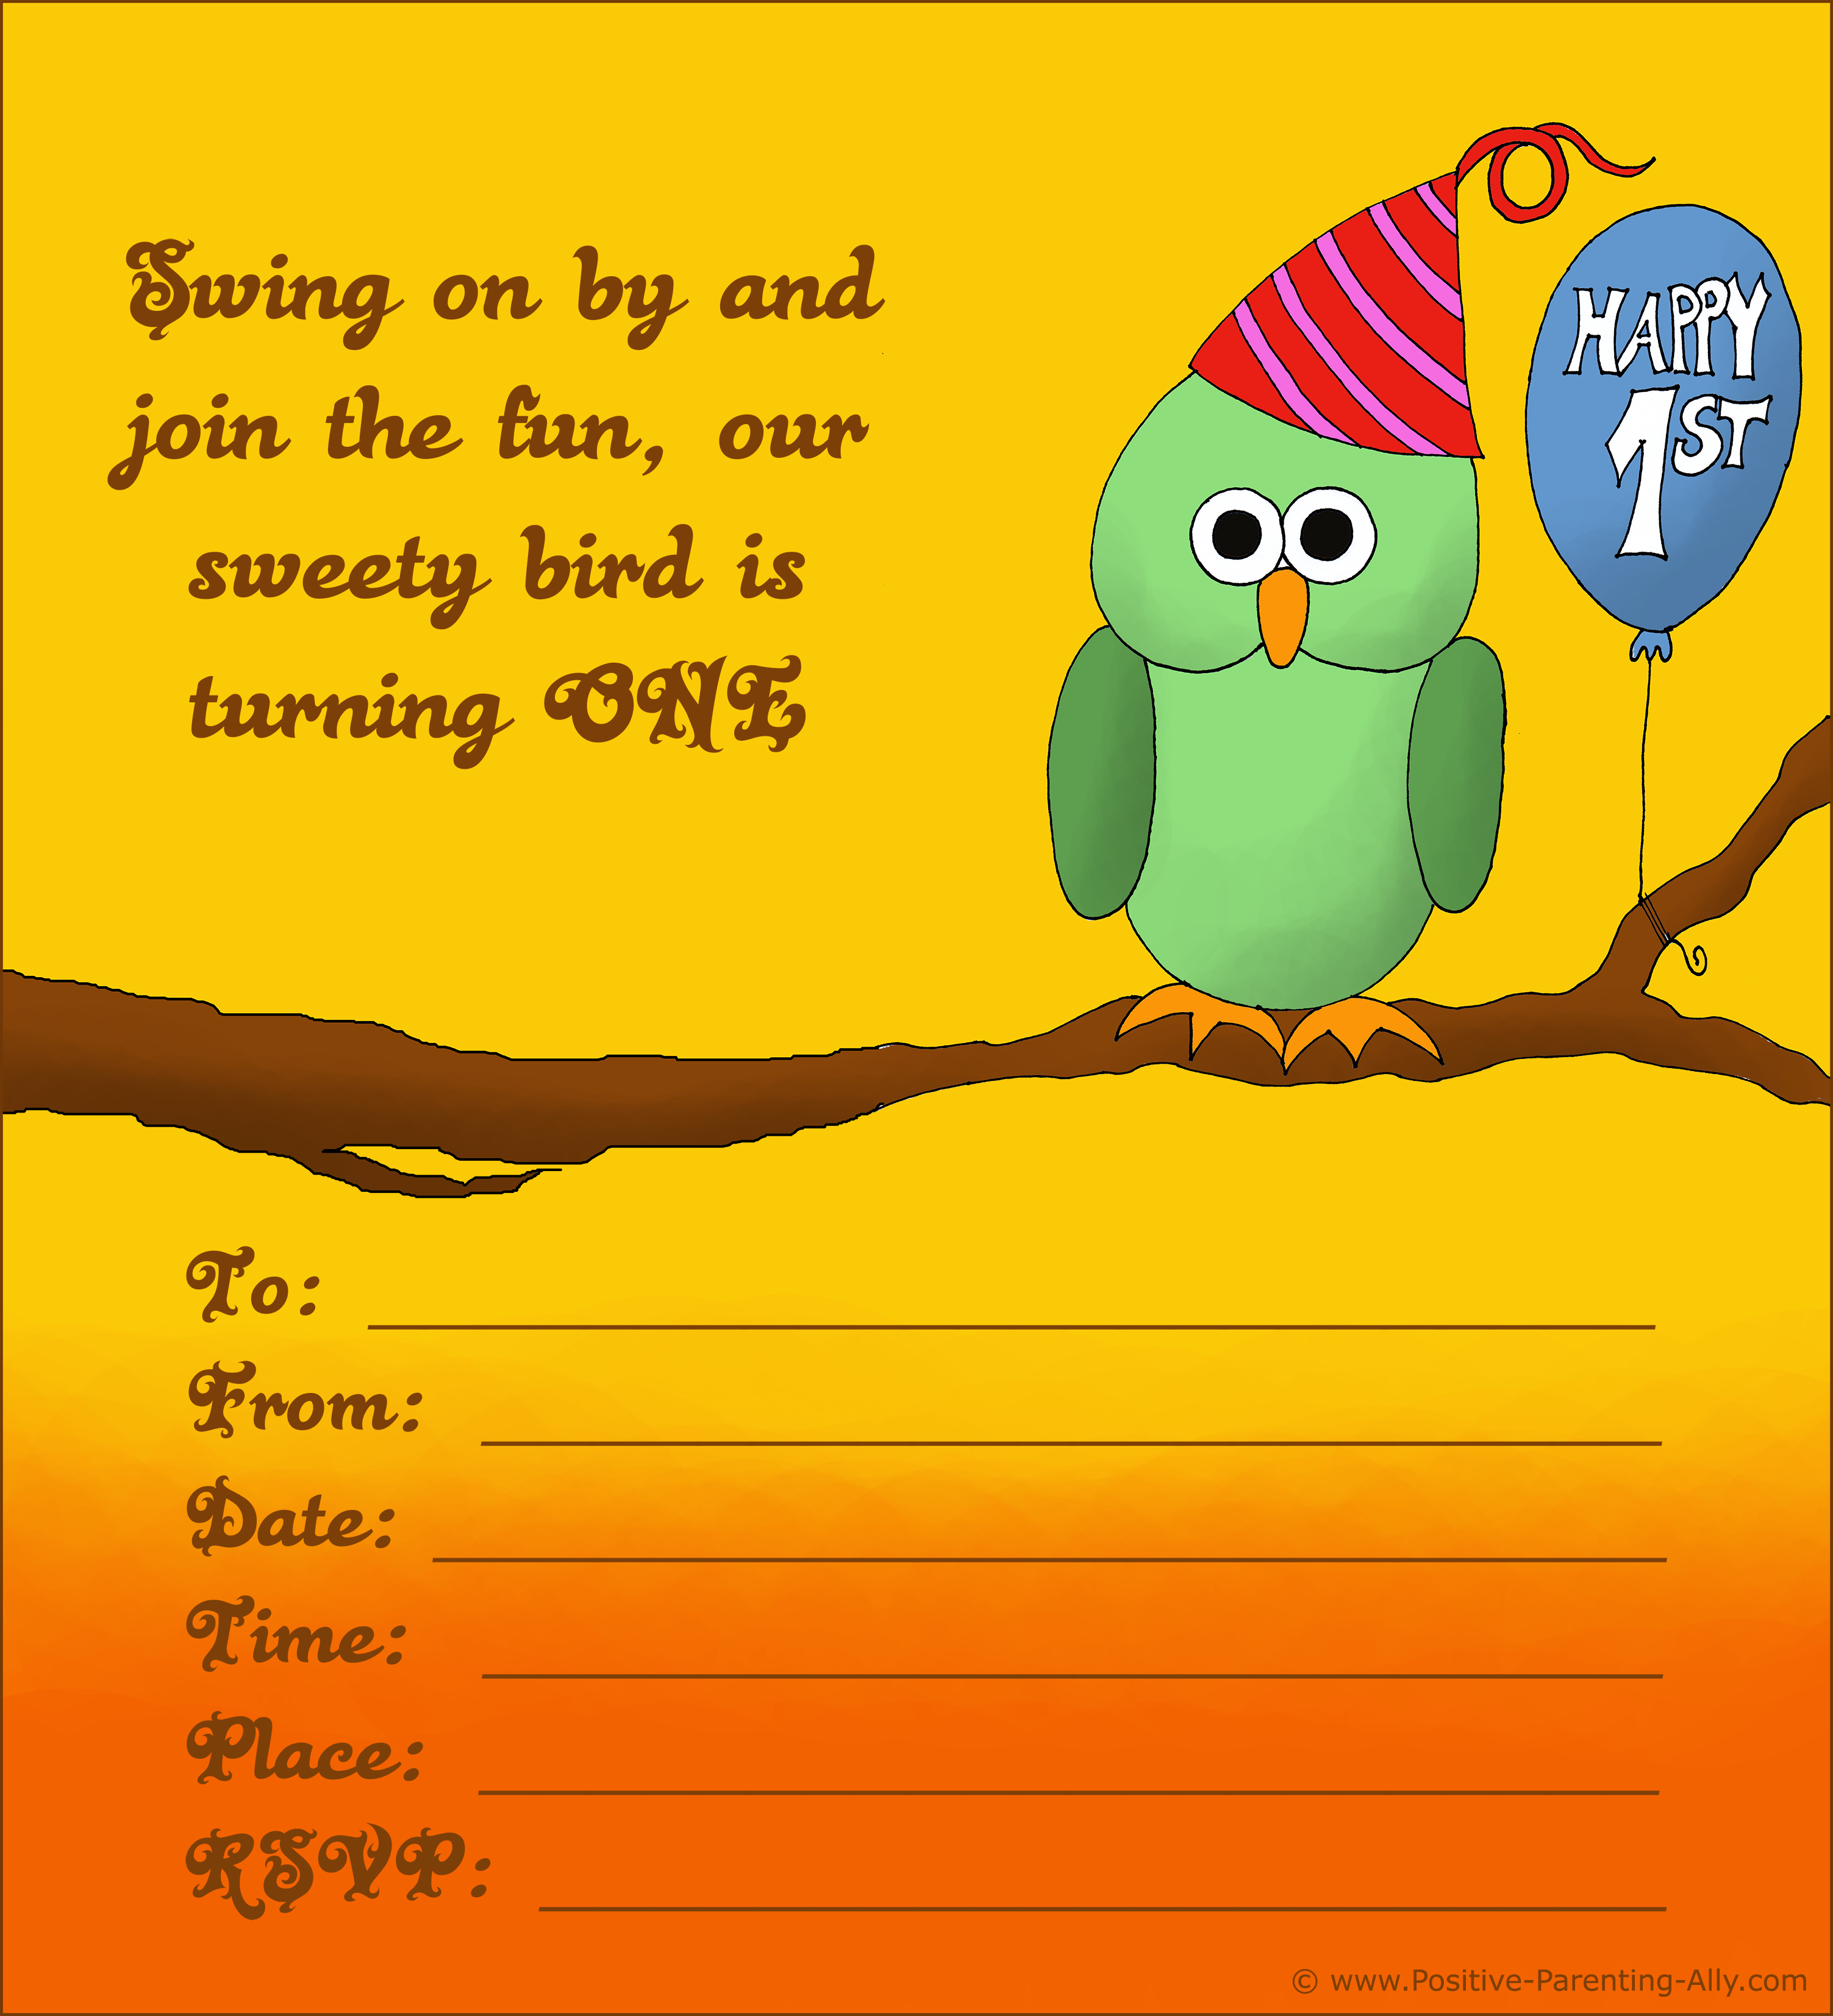 Cute owl for smart kids - free birthday invite all ready to print.